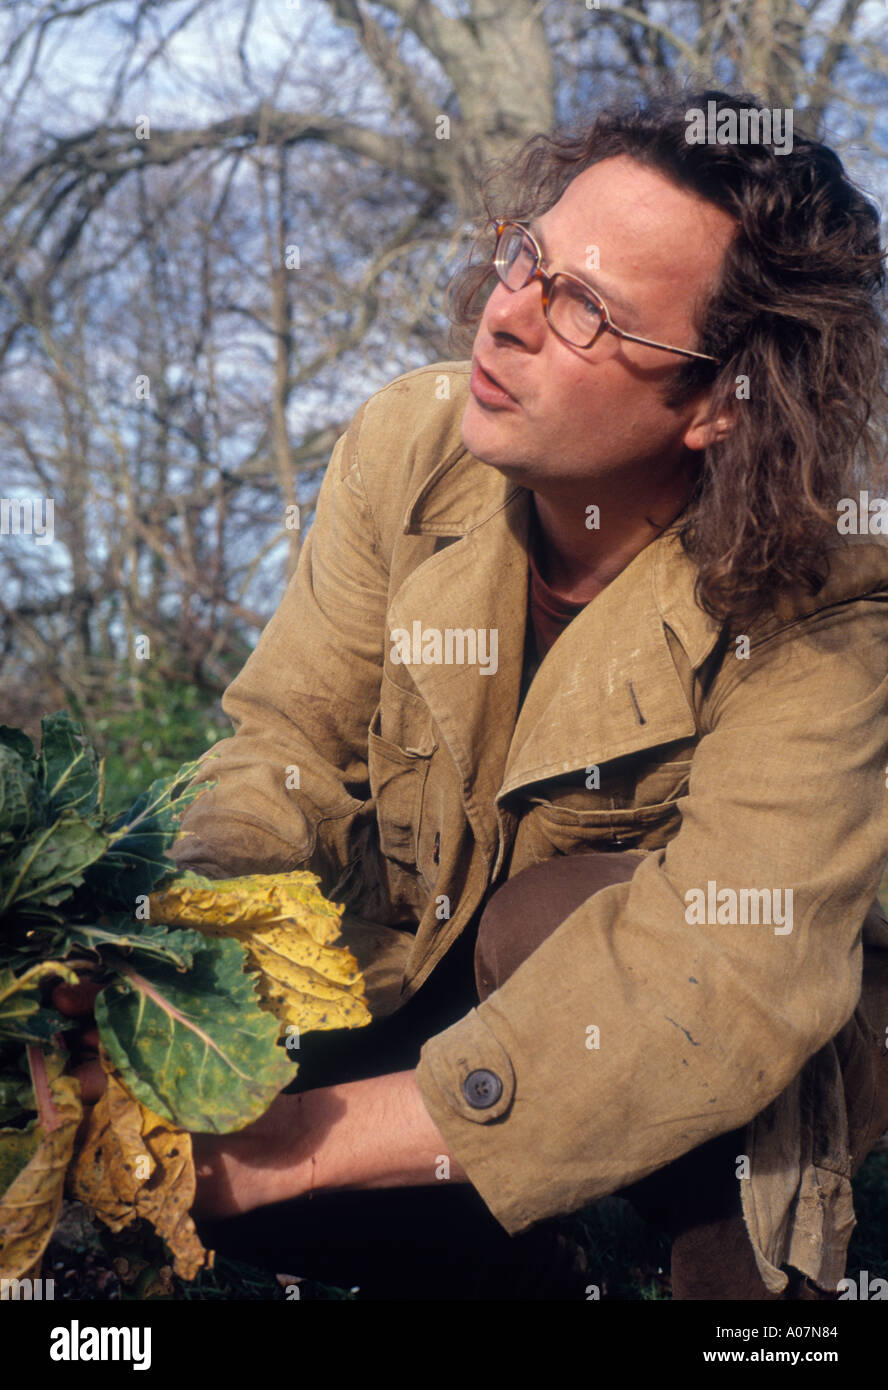 TV food Chef Hugh Fearnley Whittingstall collects cabbages at the River Cottage in Dorset - Stock Image